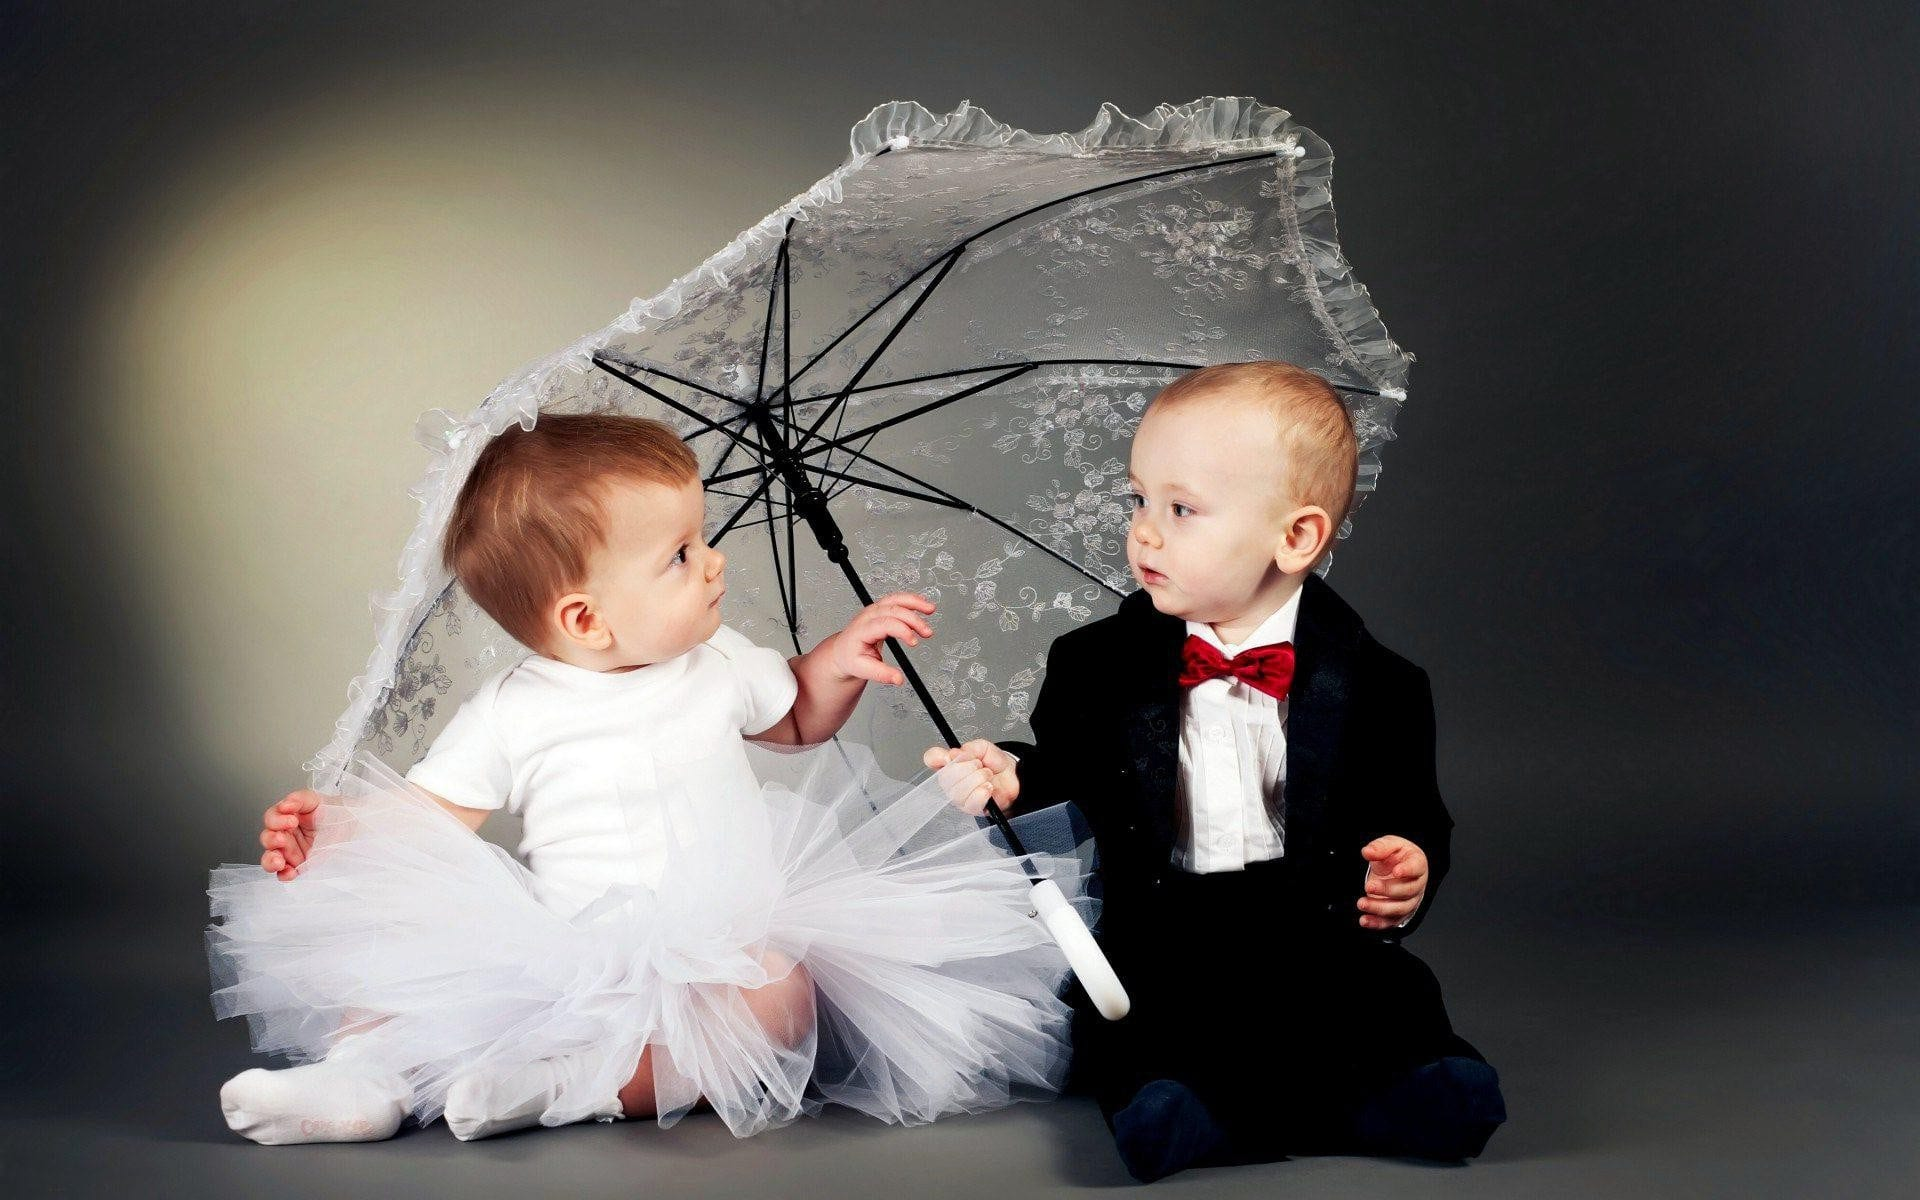 Cute-wedding-baby-couple-wallpaper